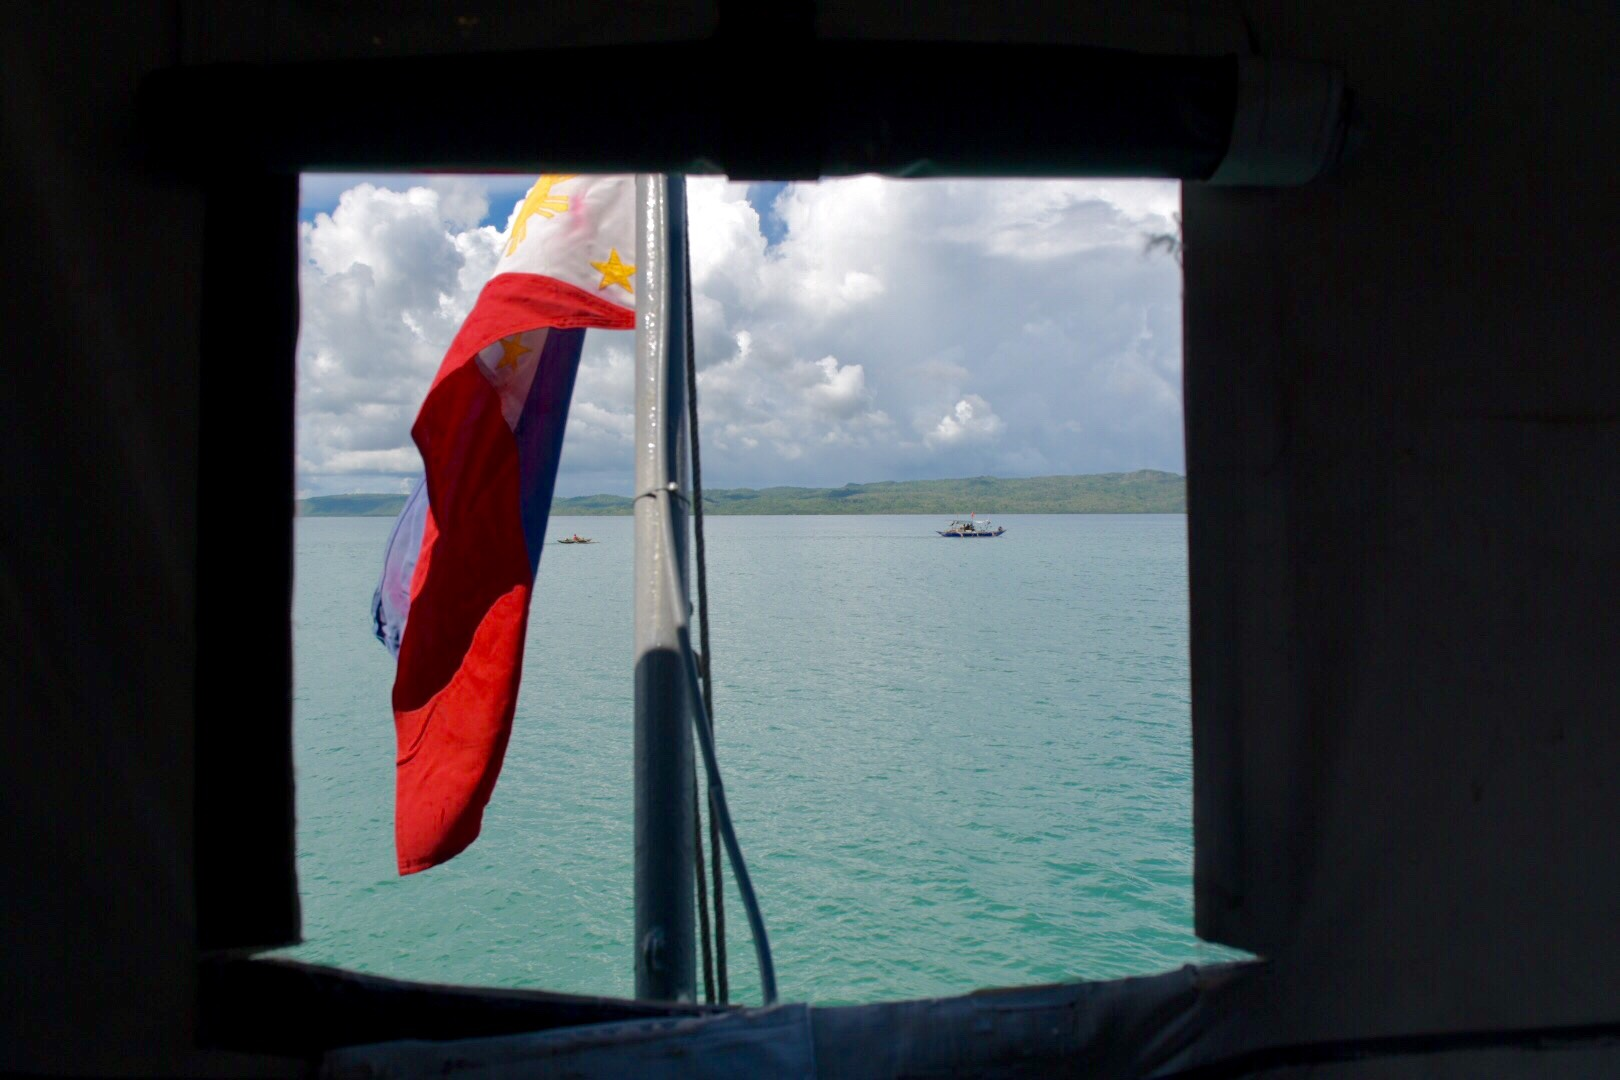 FOR FILIPINOS. The President is duty bound to protect the Constitution, which states marine resources must be protected for the exclusive use of Filipinos. Photo by LeAnne Jazul/Rappler